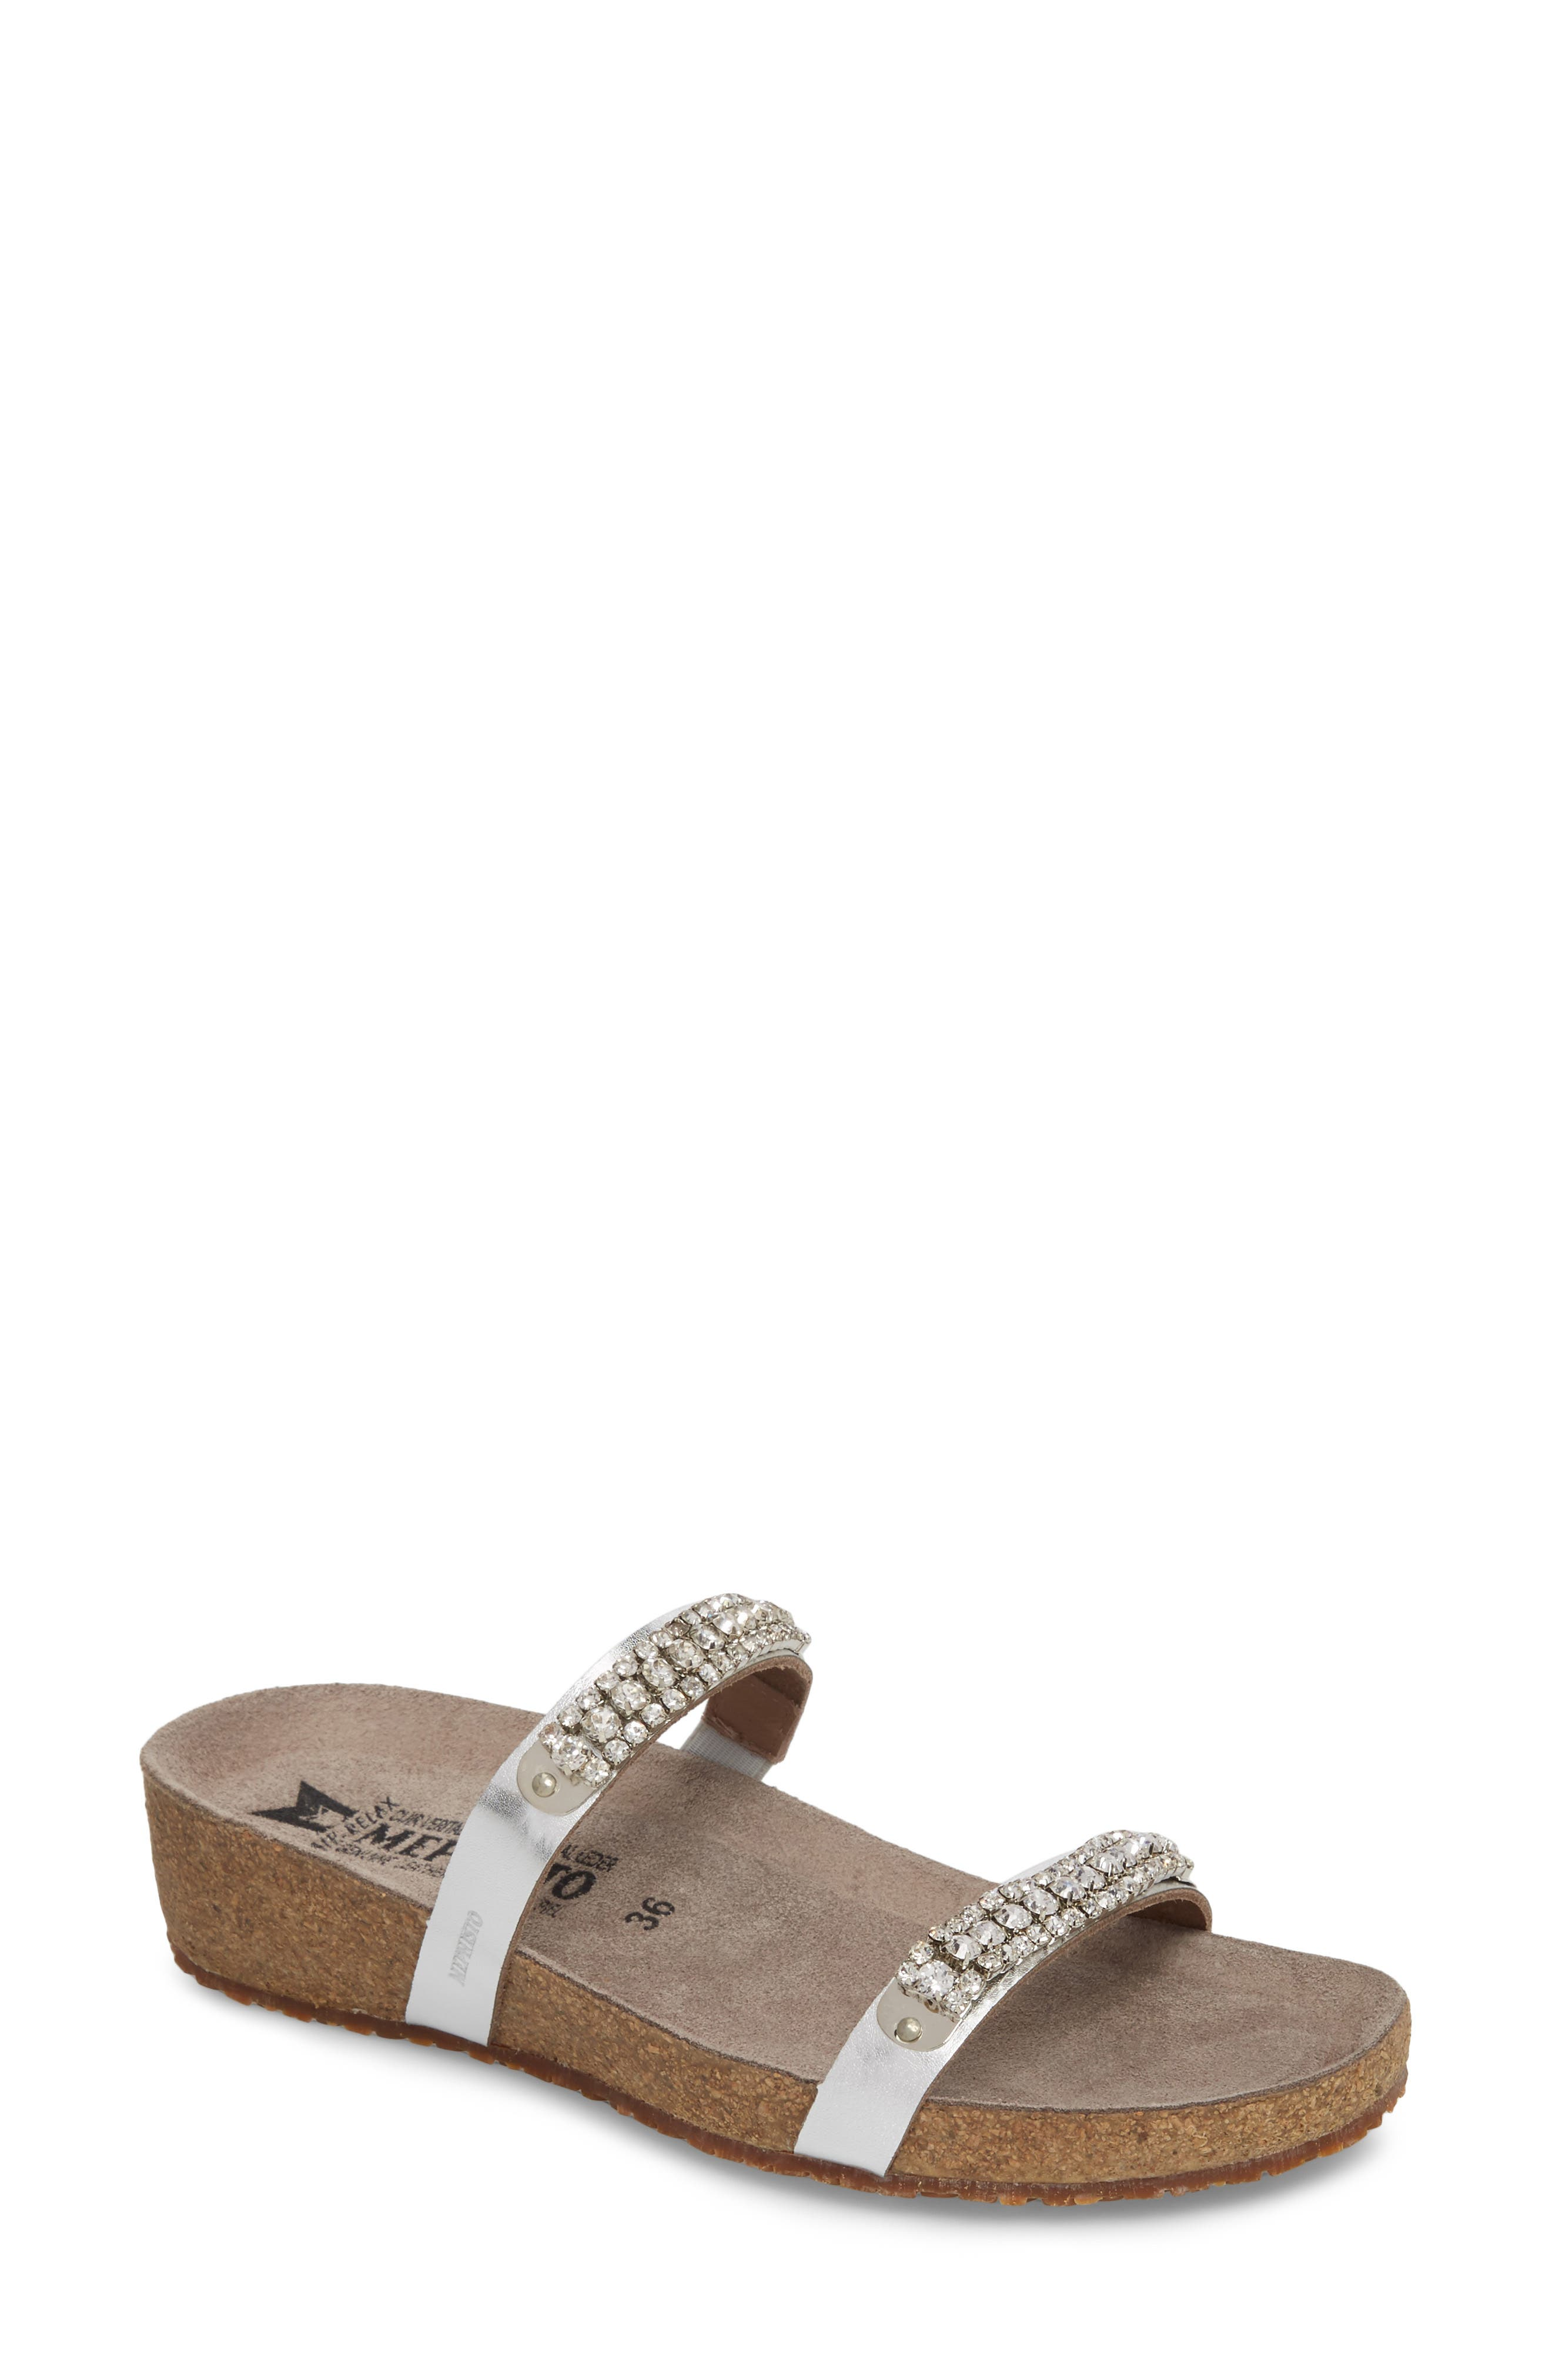 'Ivana' Crystal Embellished Slide Sandal,                         Main,                         color, 082